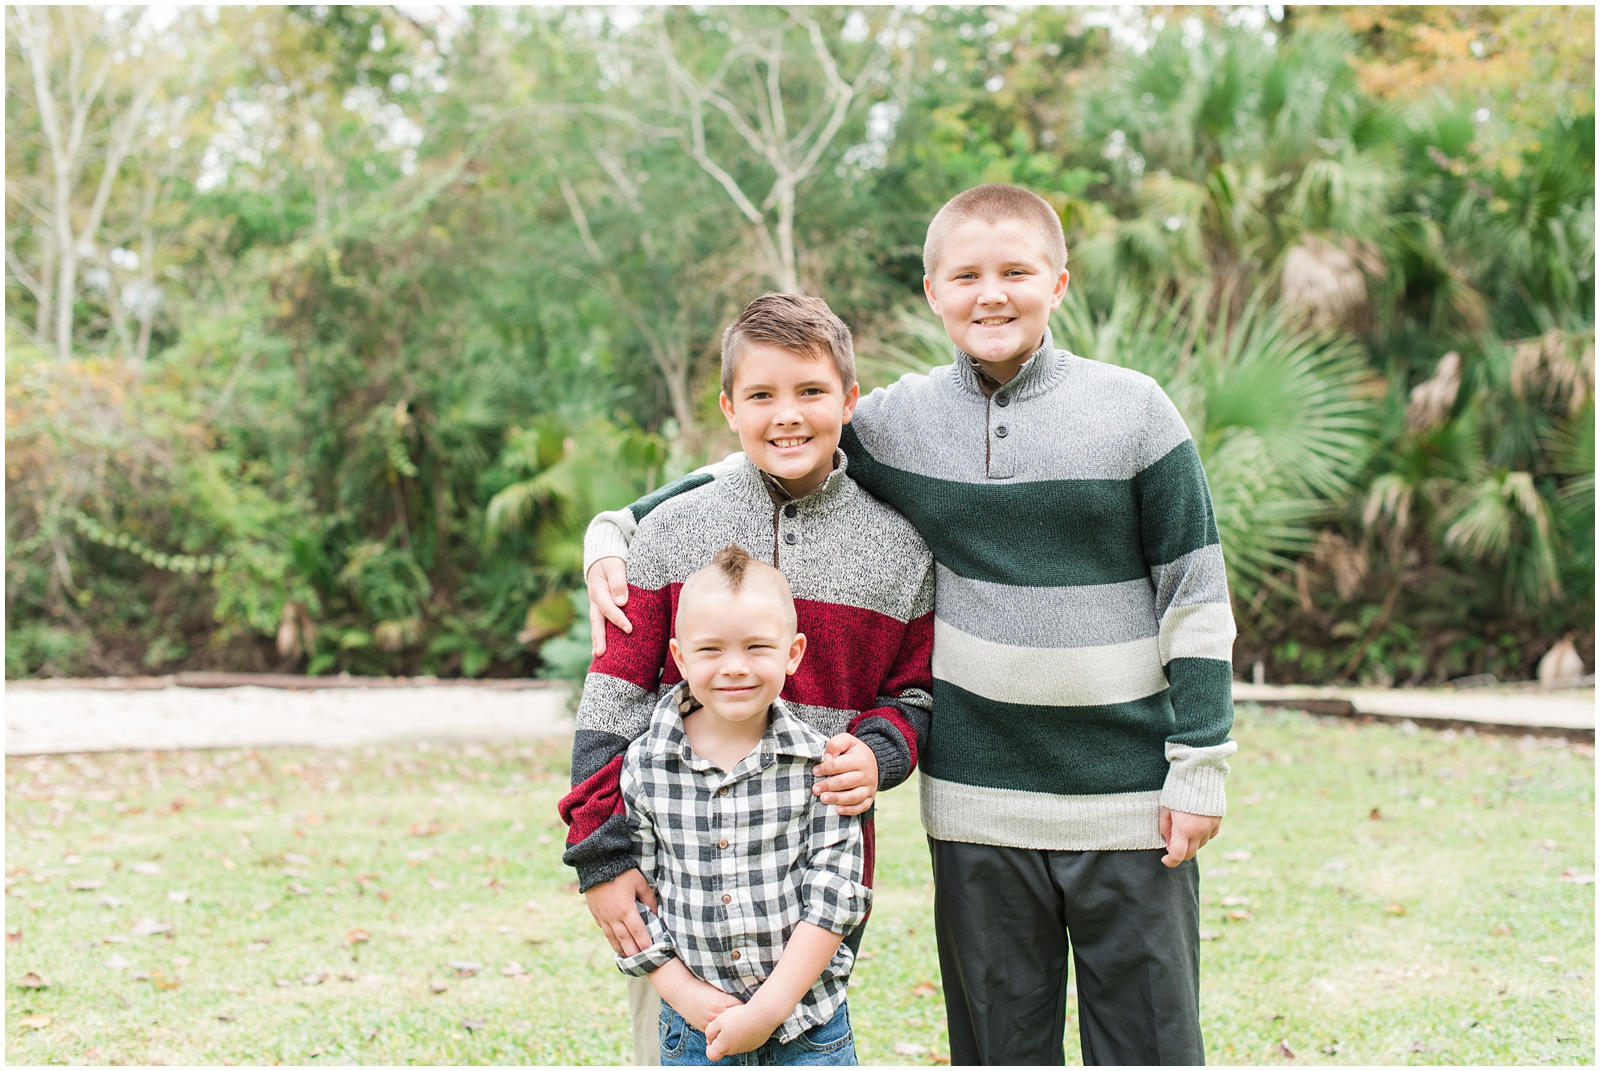 Christmas_Mini Sessions_Holidays_Howell Park_Jacksonville_Florida_44.jpg